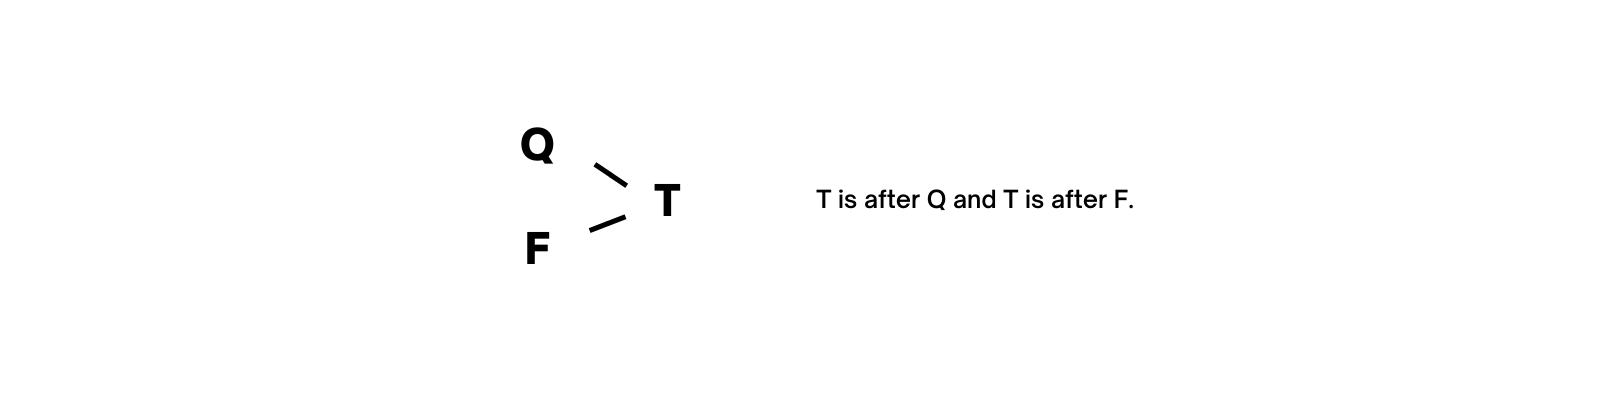 T is after Q and T is after F.